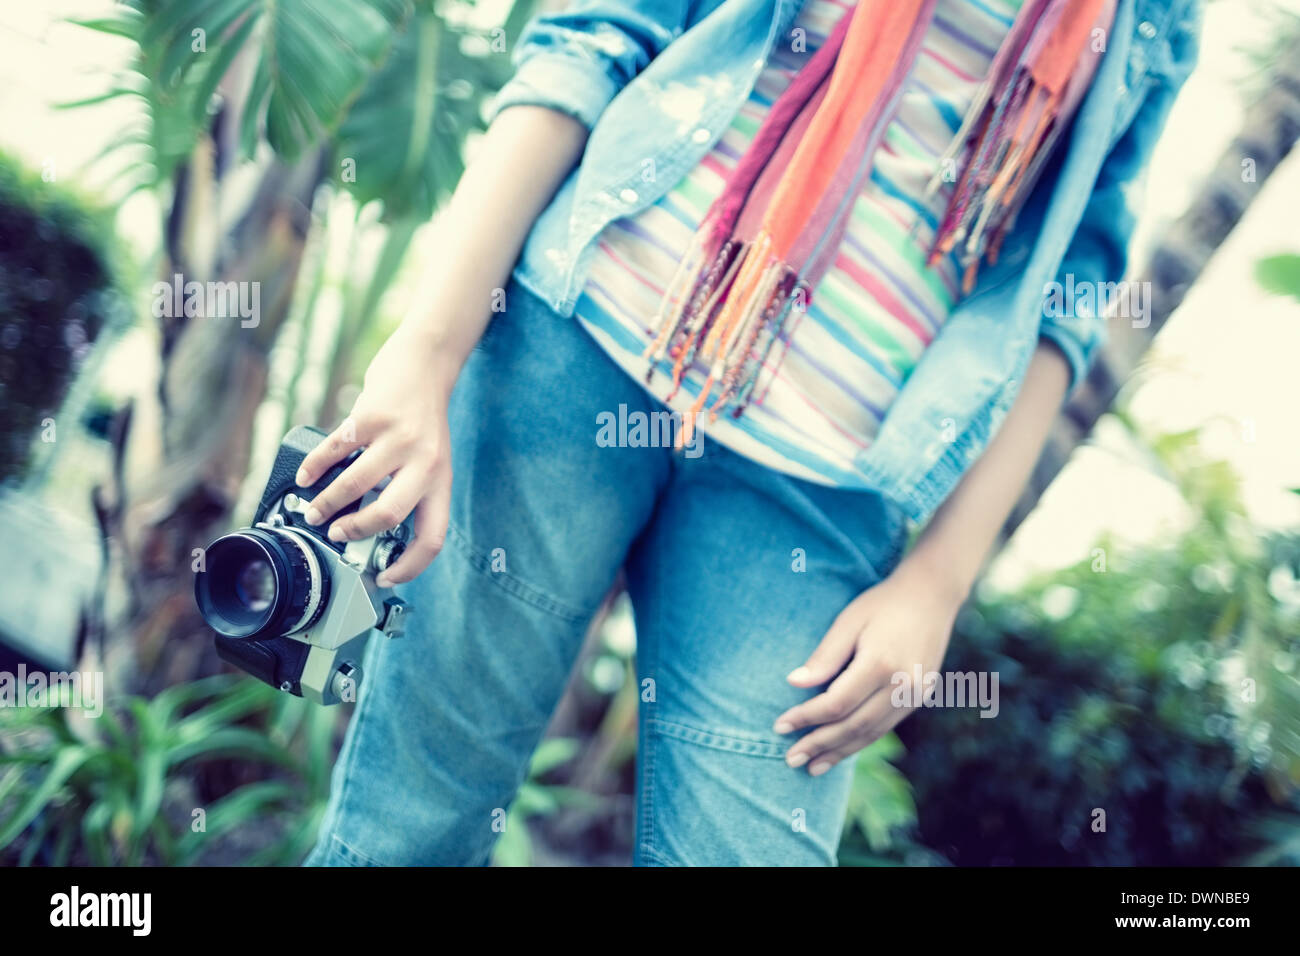 Woman wearing jeans and denim shirt holding camera outside - Stock Image